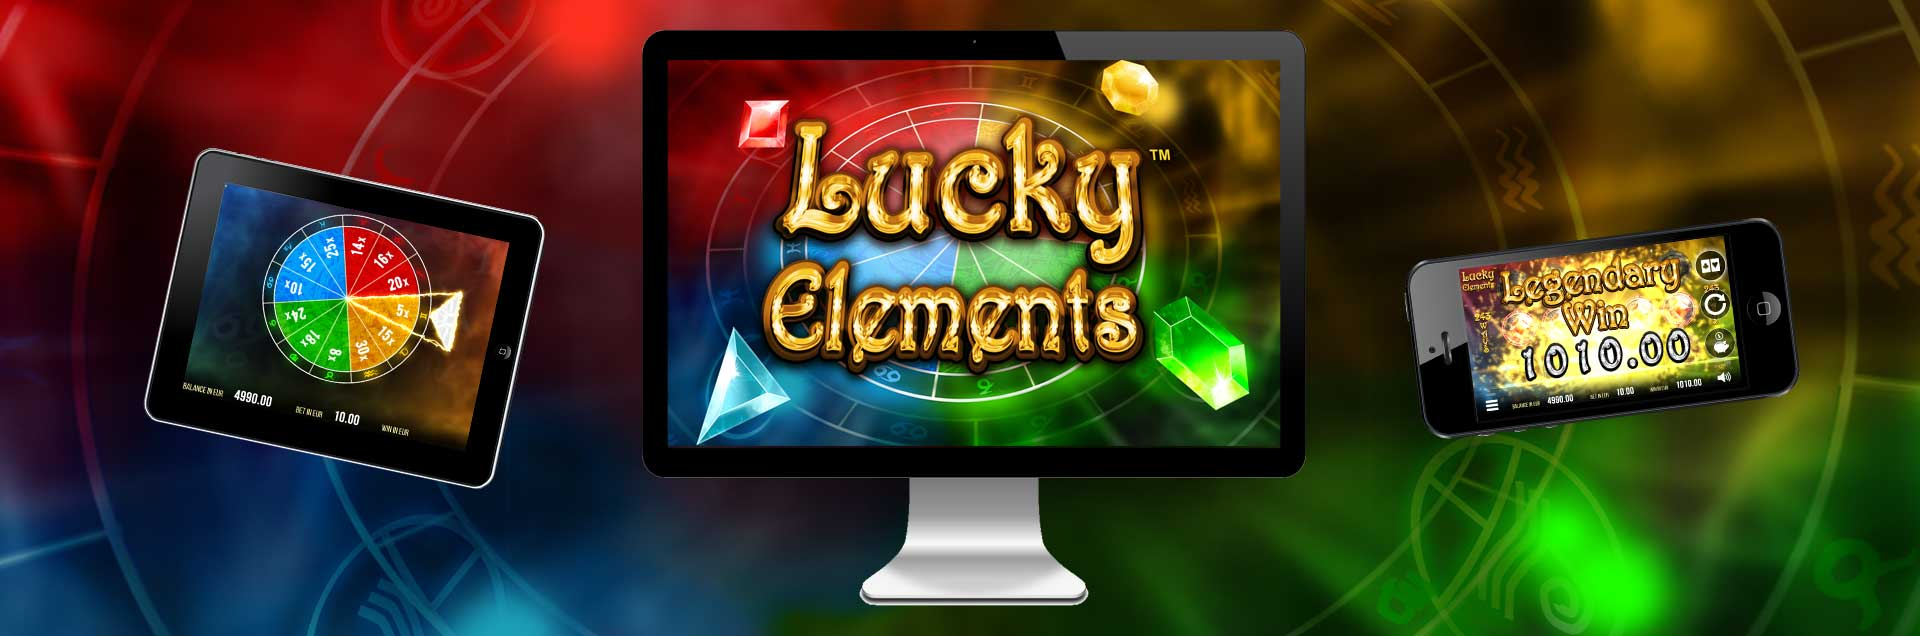 Lucky Elements Header HomePage Image2